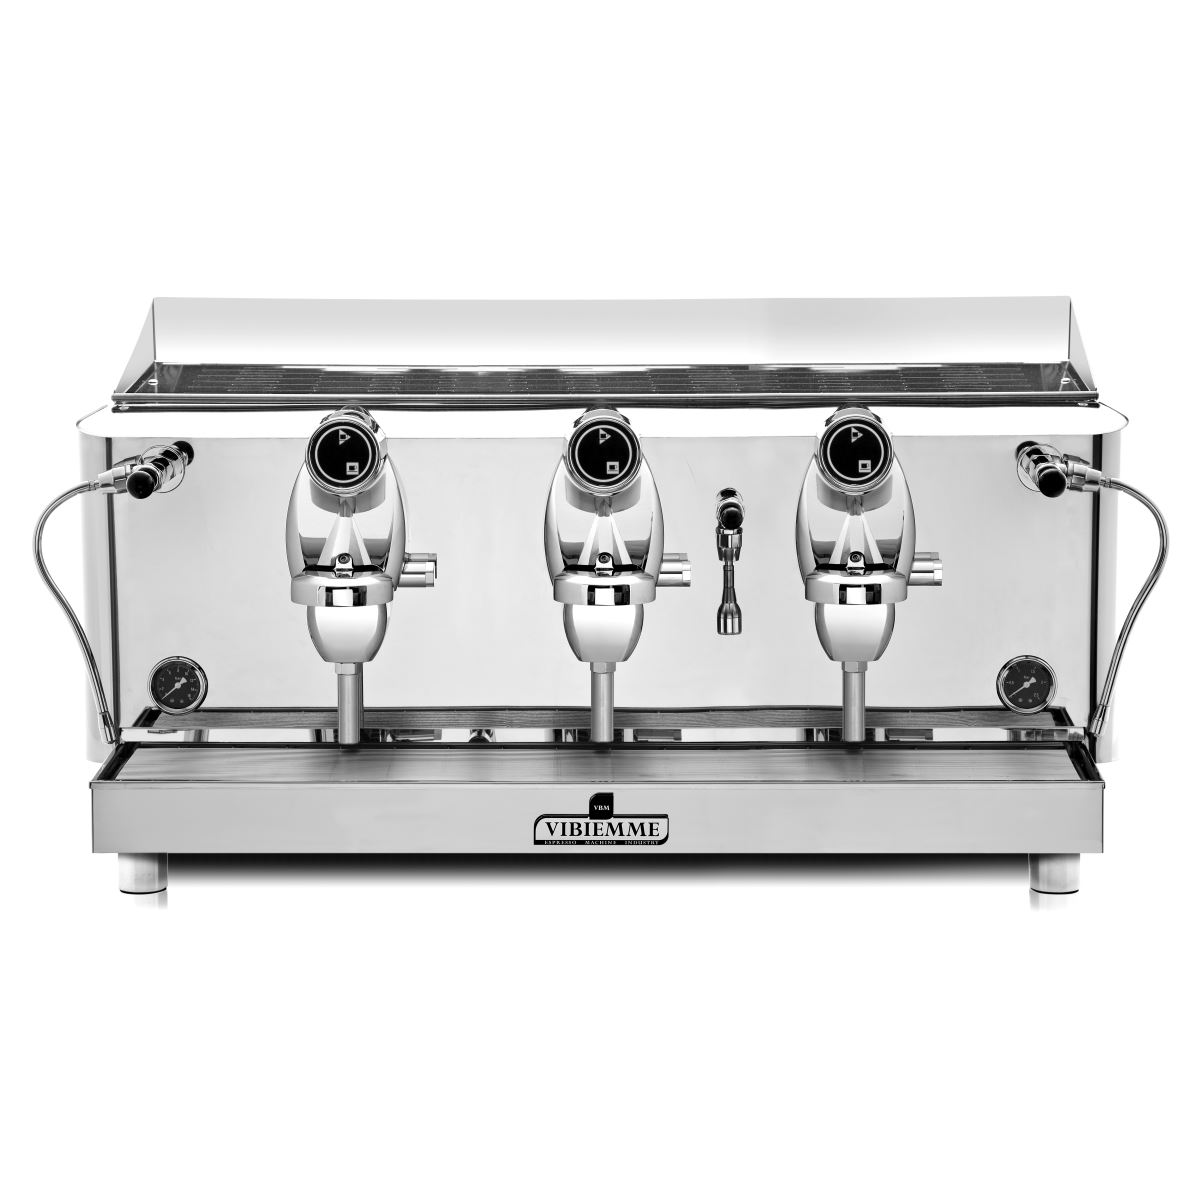 Professional coffee machine Vibiemme Lollo Semiautomatica, 3 groups